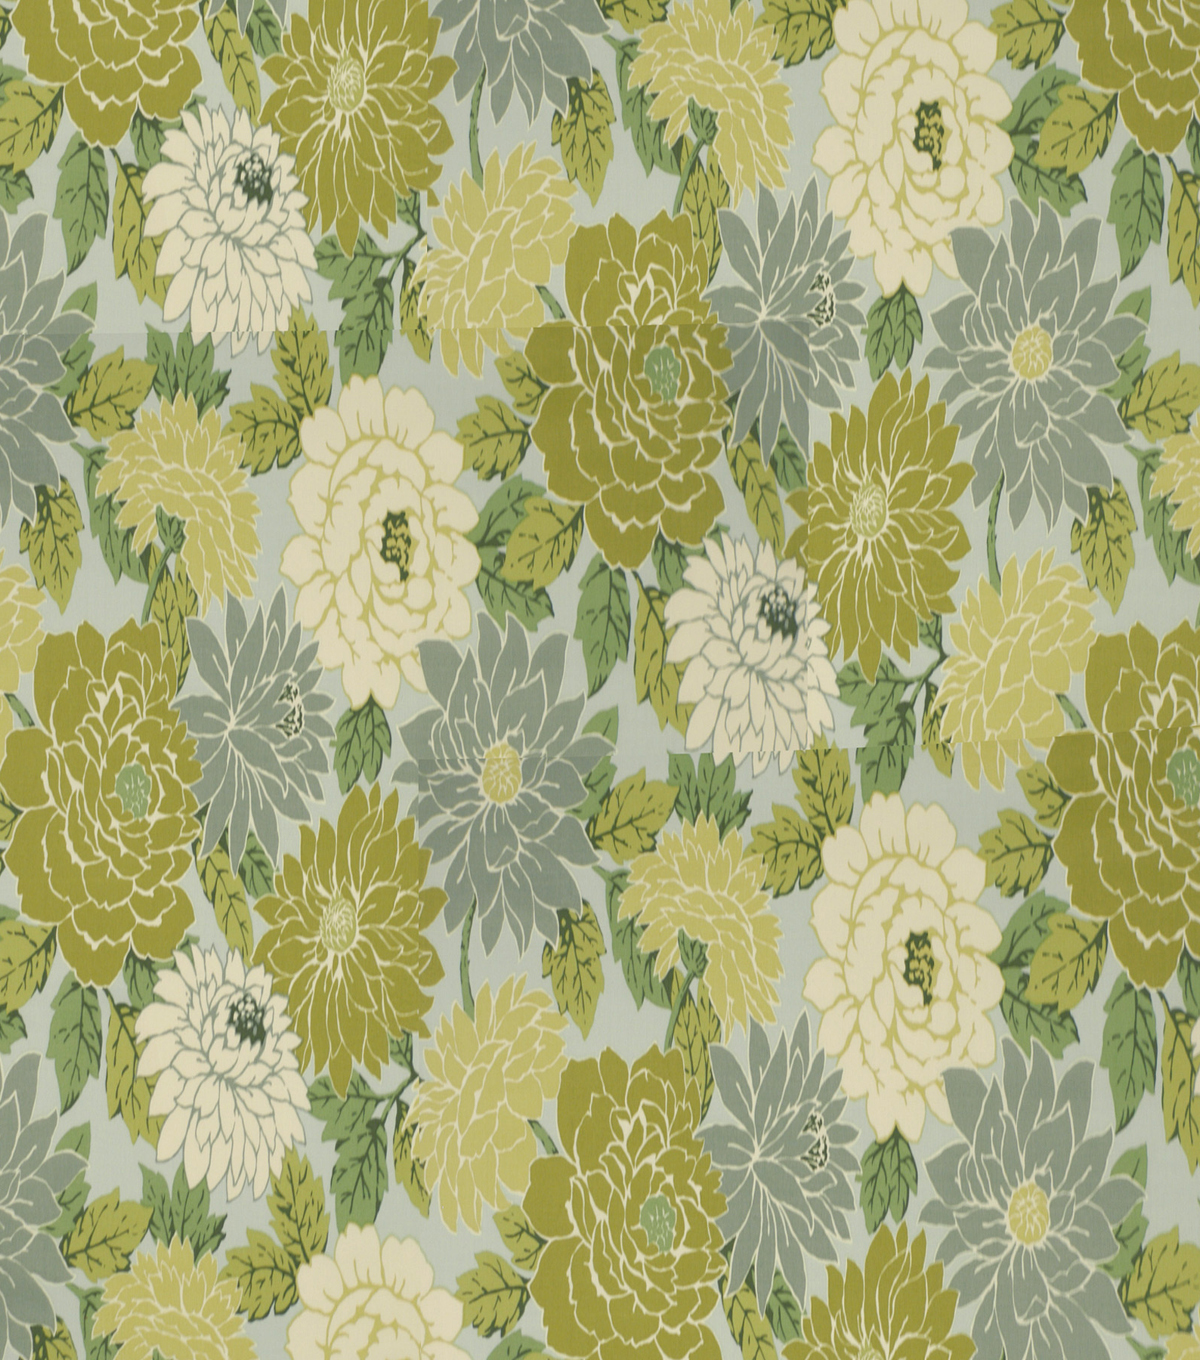 Home Decor 8\u0022x8\u0022 Fabric Swatch-Outdoor FabricBebedro Spa